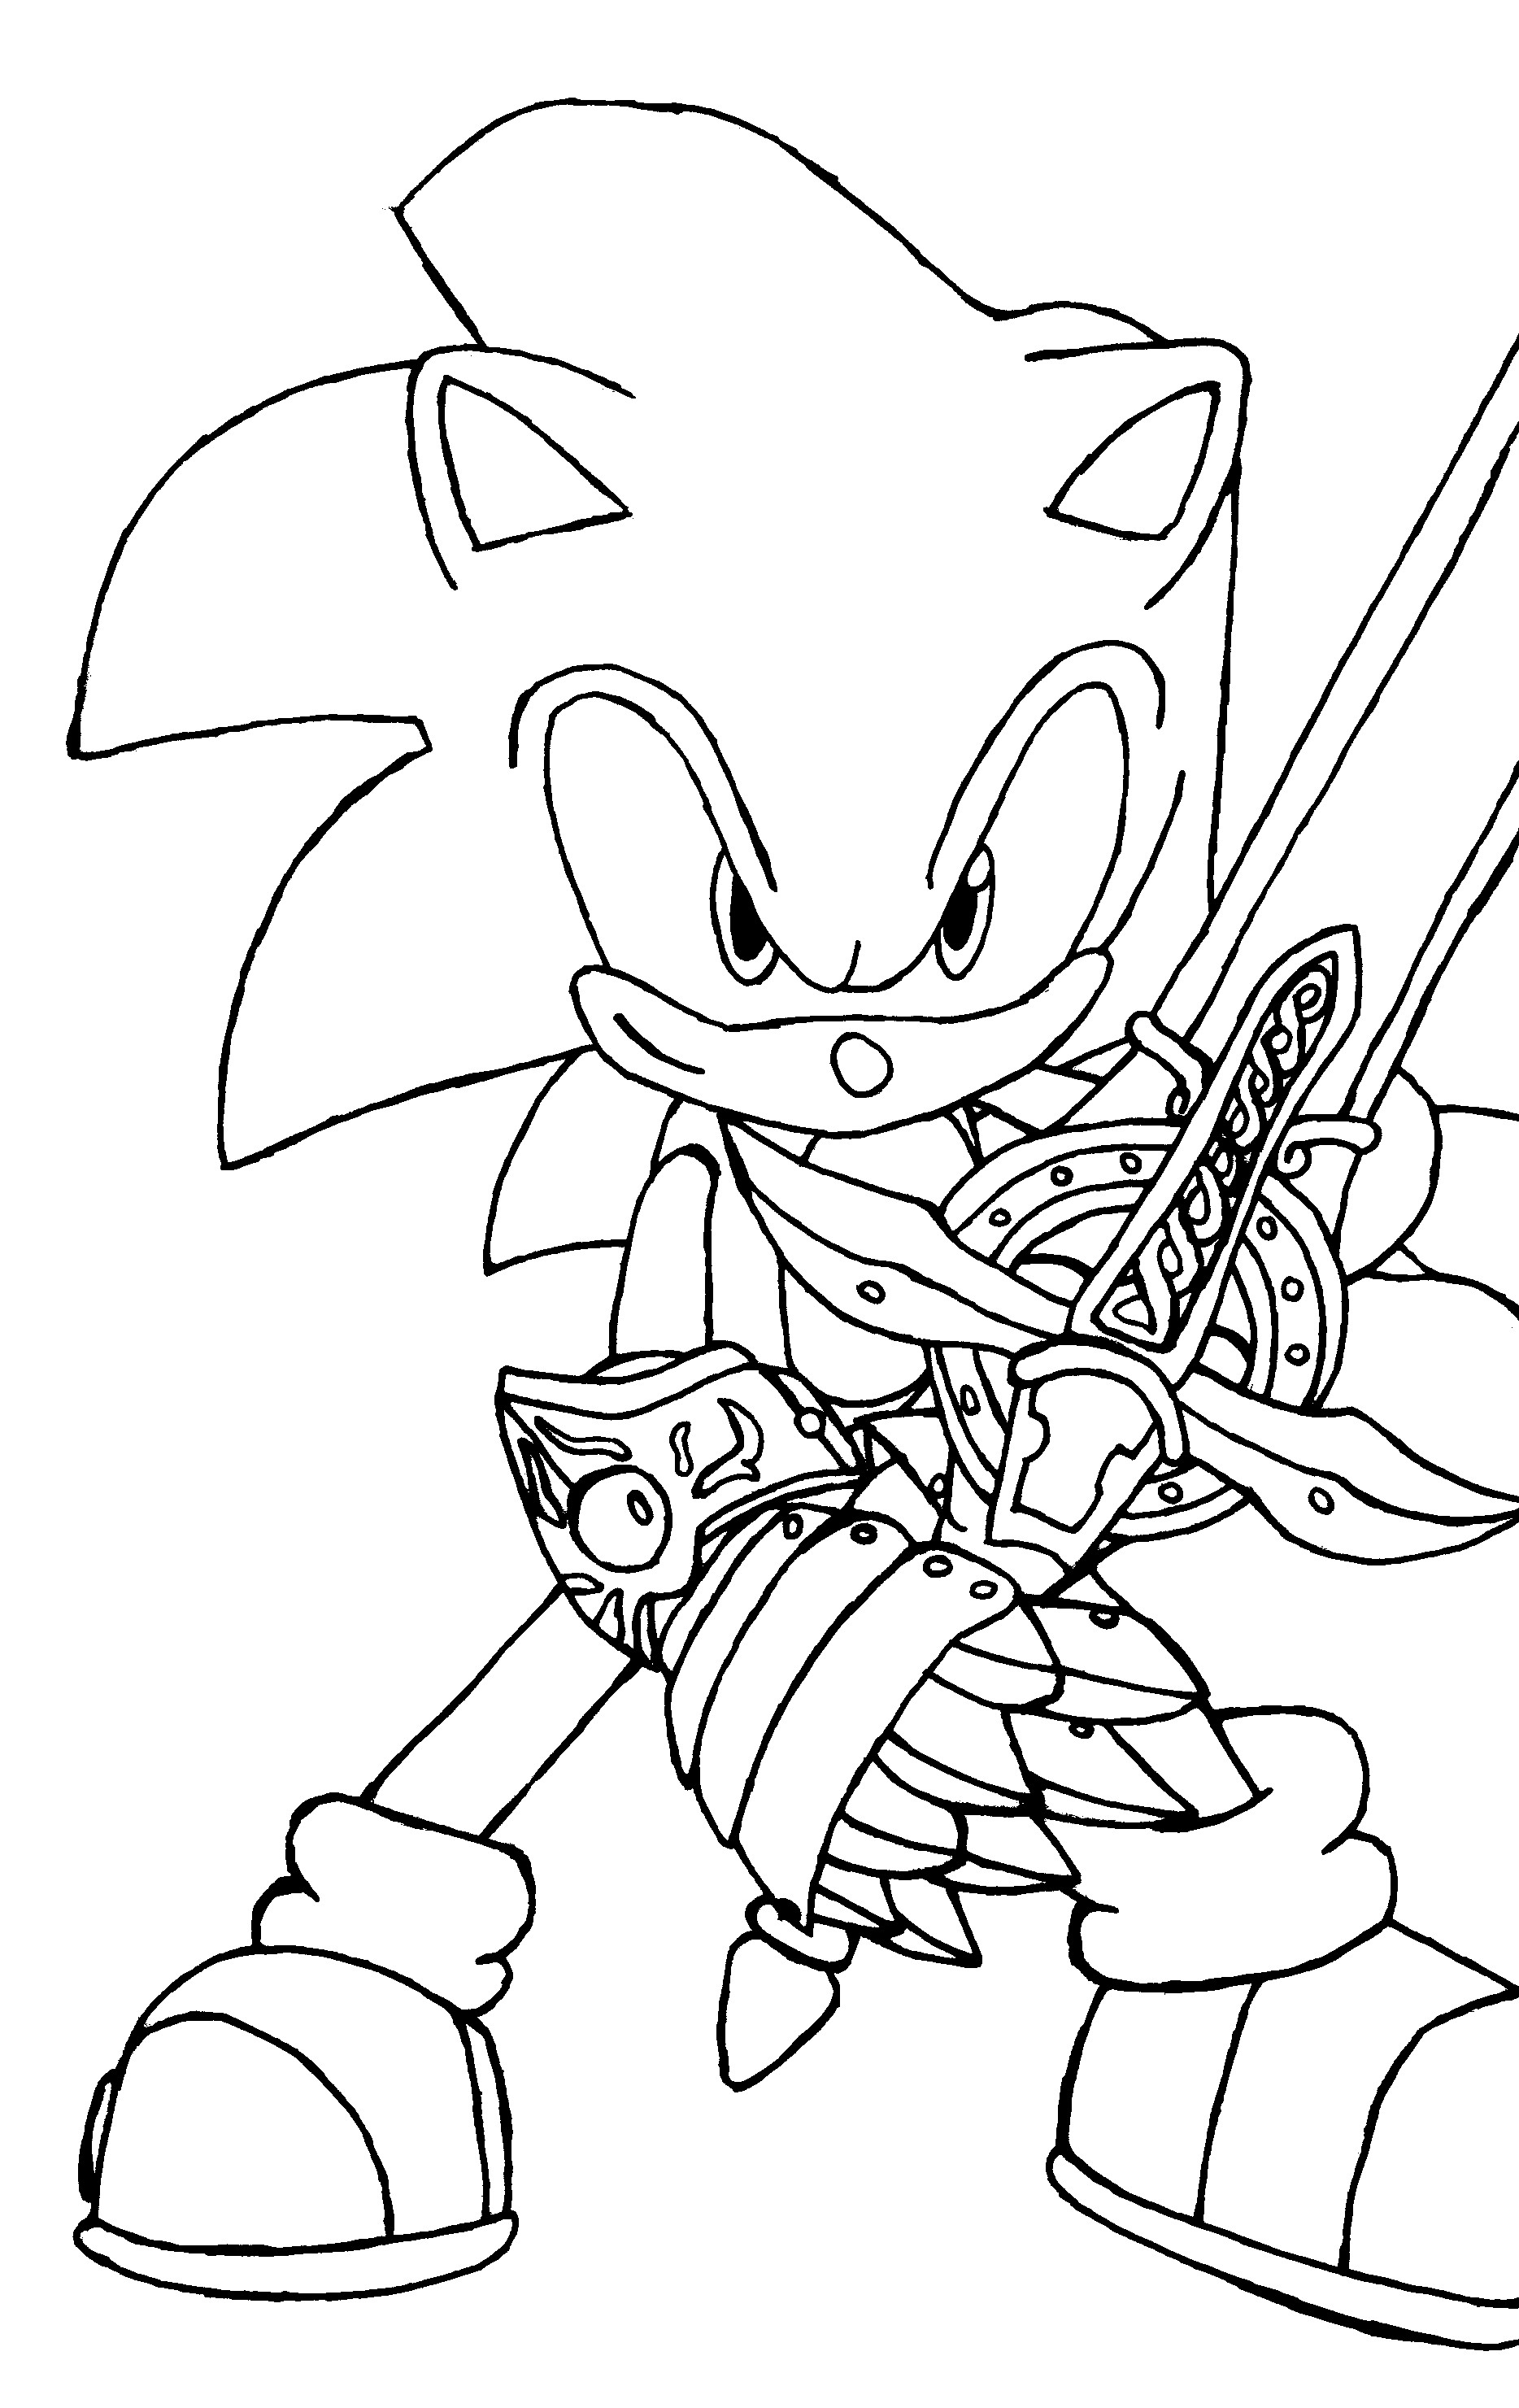 sonic the hedgehog coloring pages sonic the hedgehog coloring pages to download and print coloring pages the hedgehog sonic